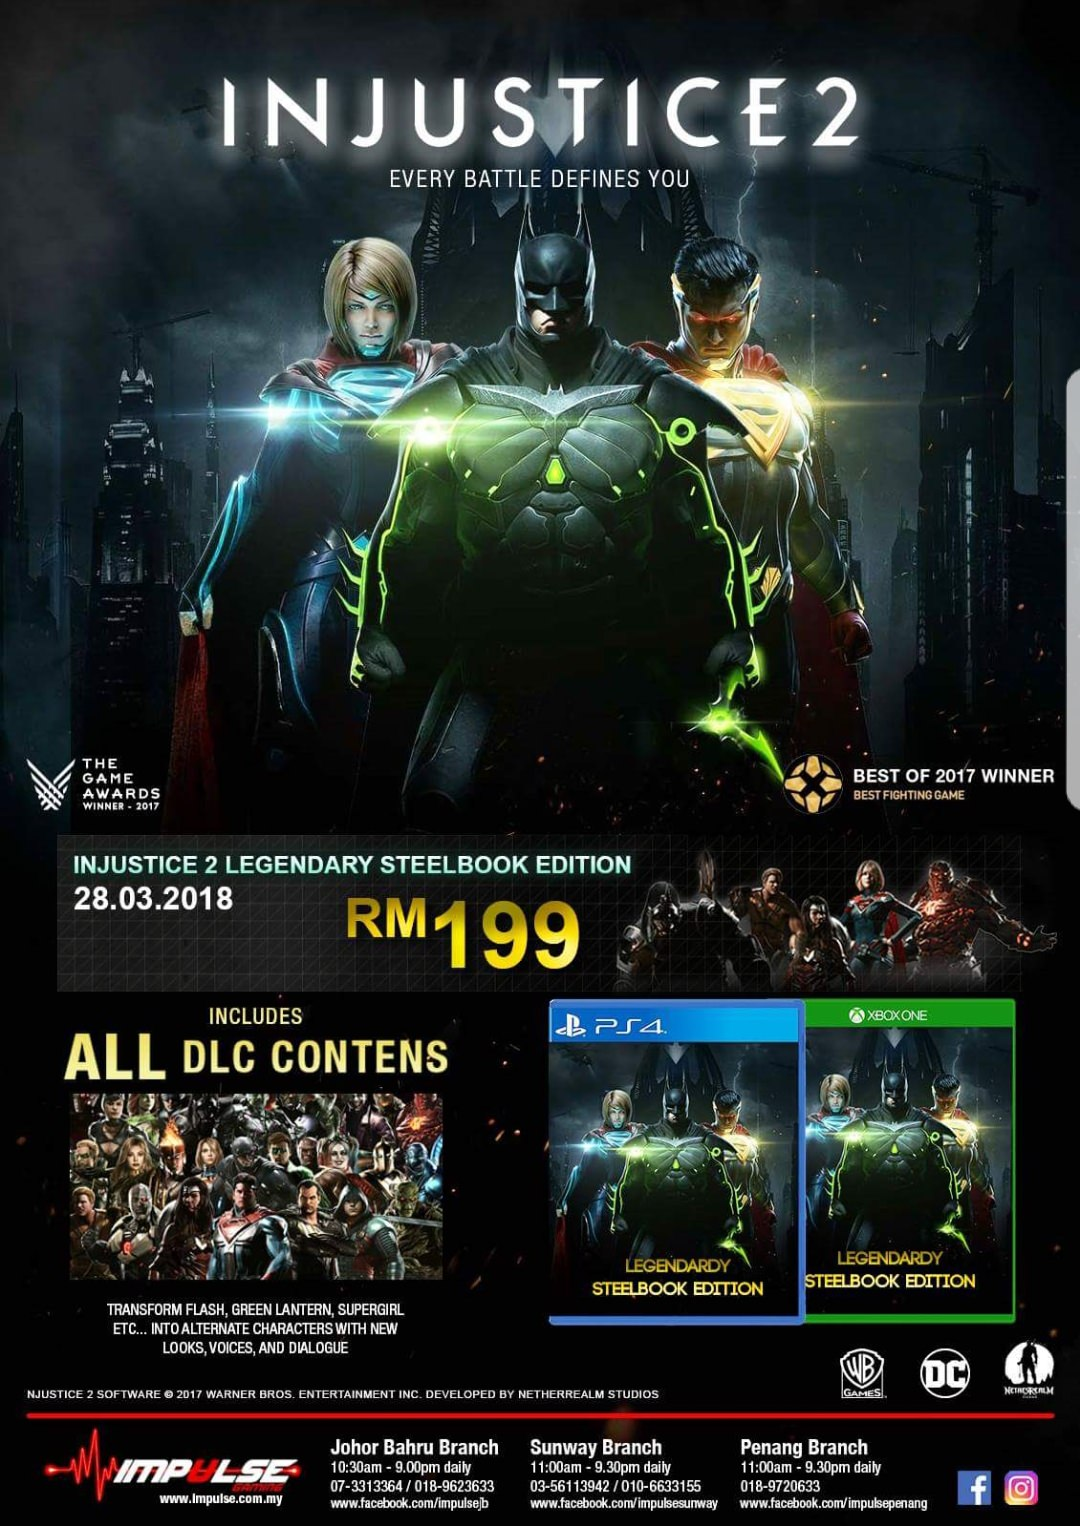 Injustice 2 Legendary Edition 1 out of 1 image gallery